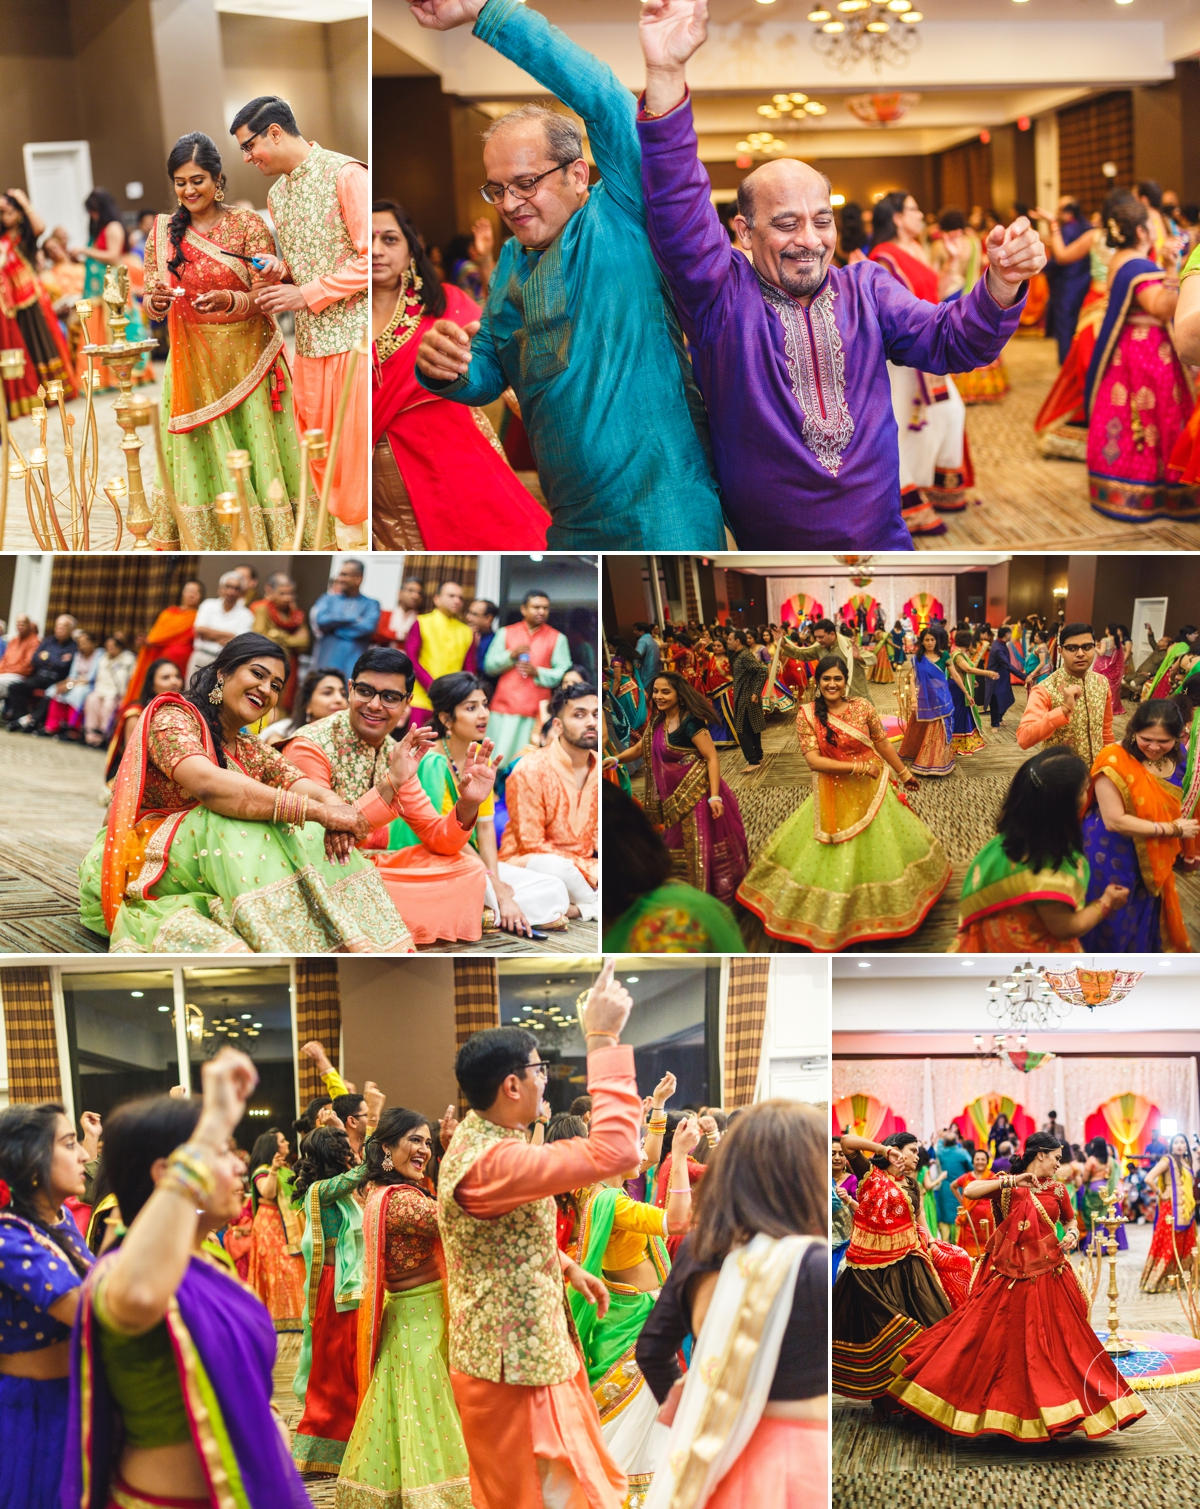 raas-garba-dancing-pictures-indian-wedding-ceremony-photography